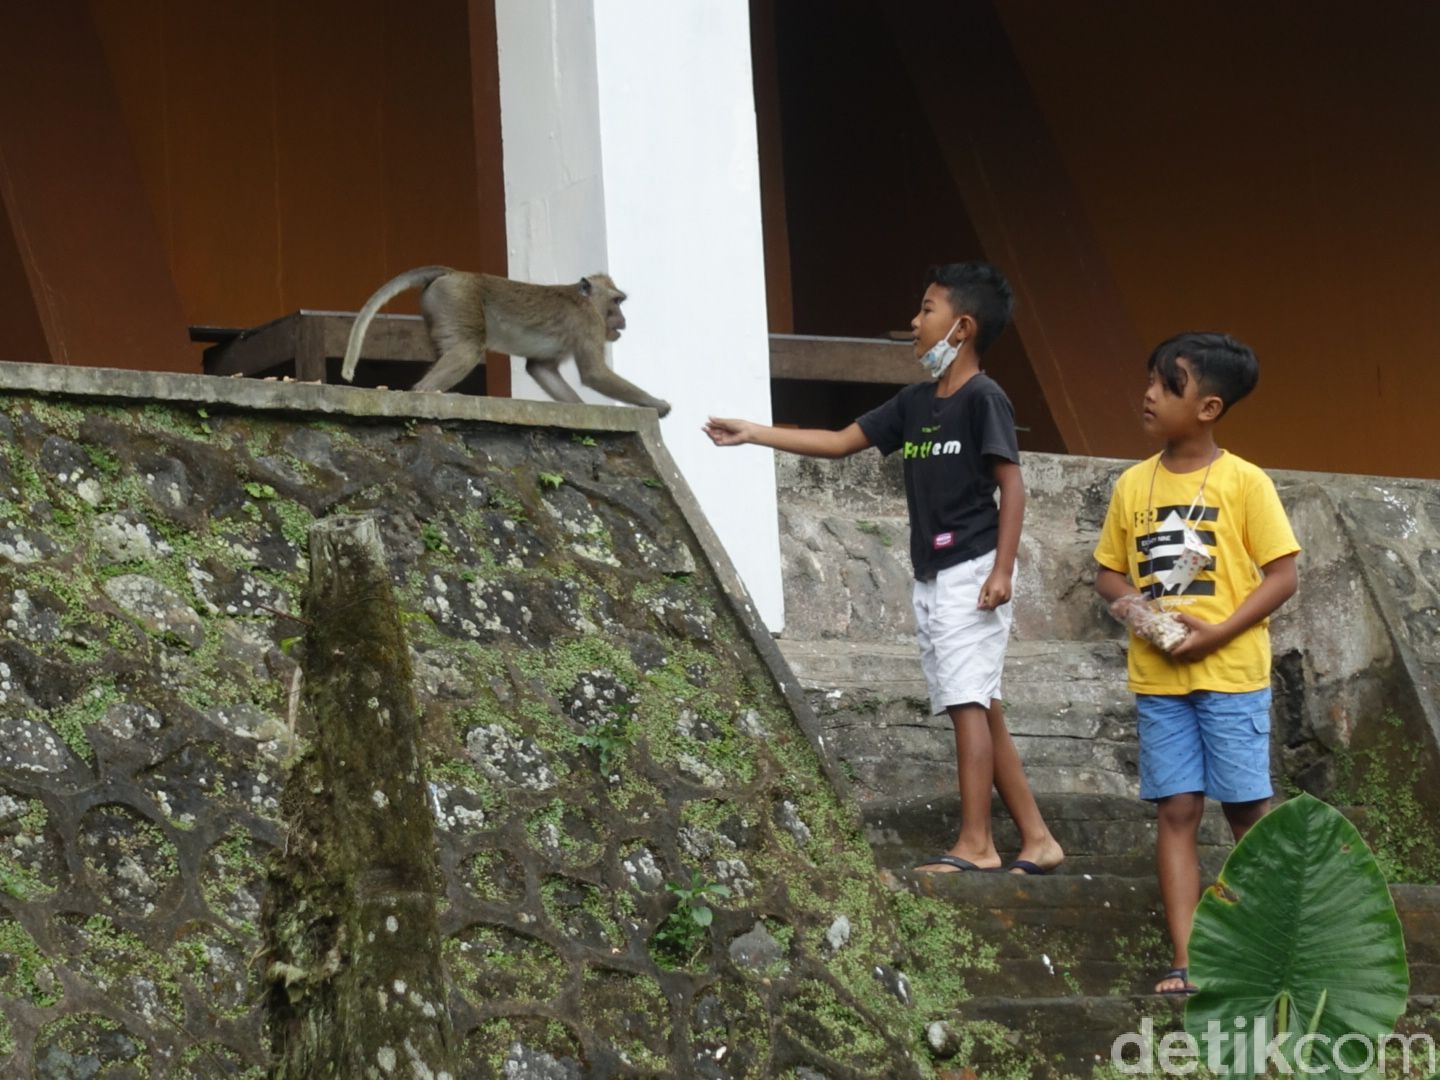 Kaliurang area is invaded by tourists